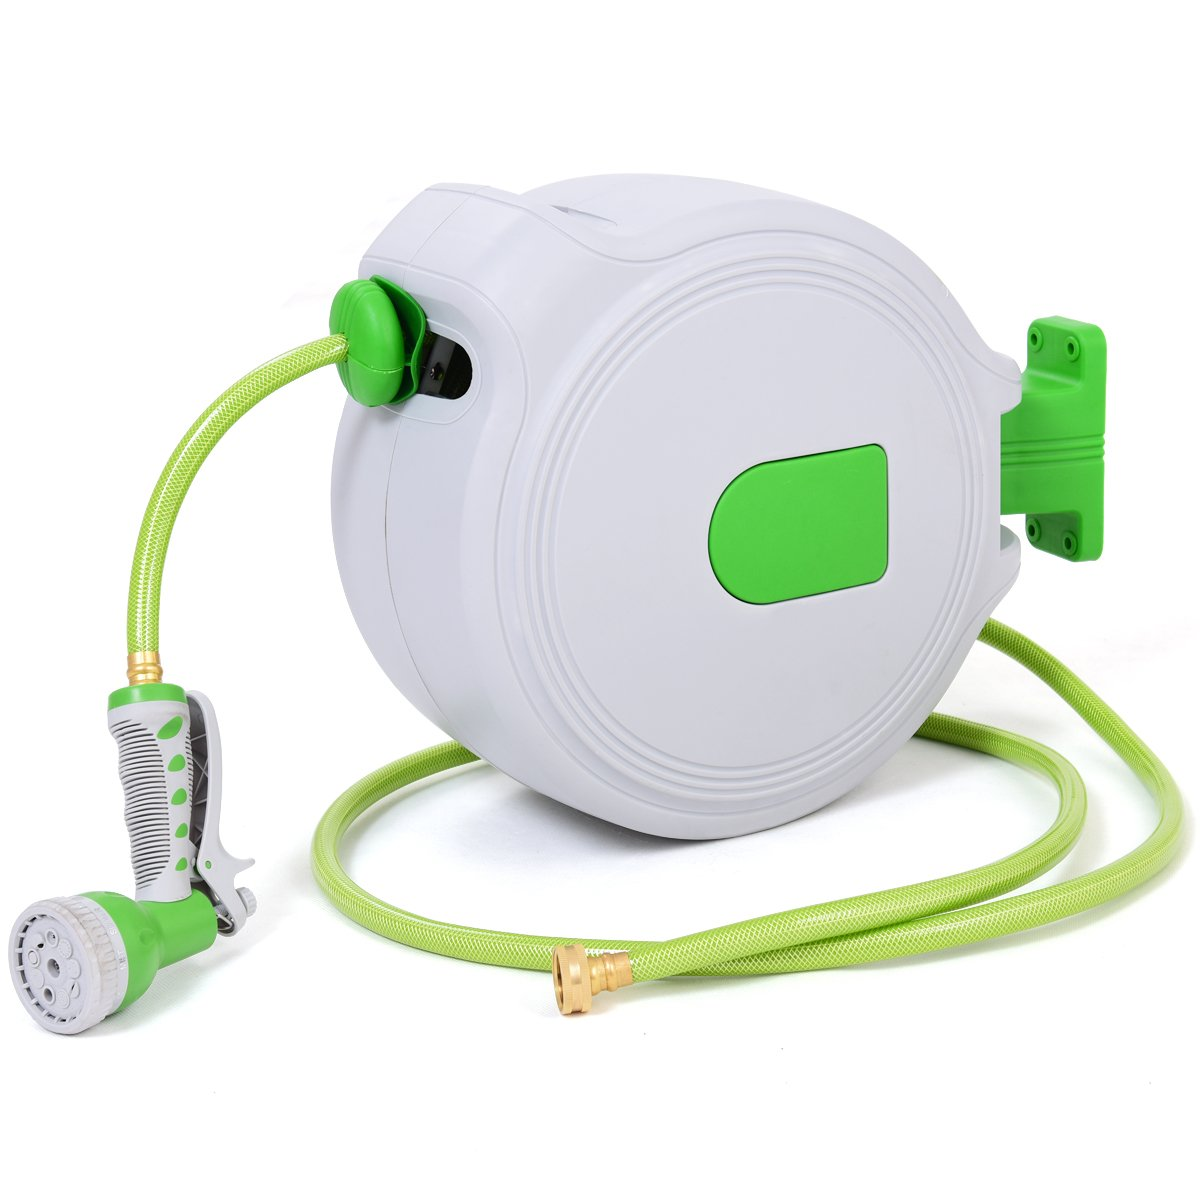 Goplus Retractable Water Hose Reel Wall Mounted 1/2'' Plastic Water Hose w/Spray Gun for Garden (65')